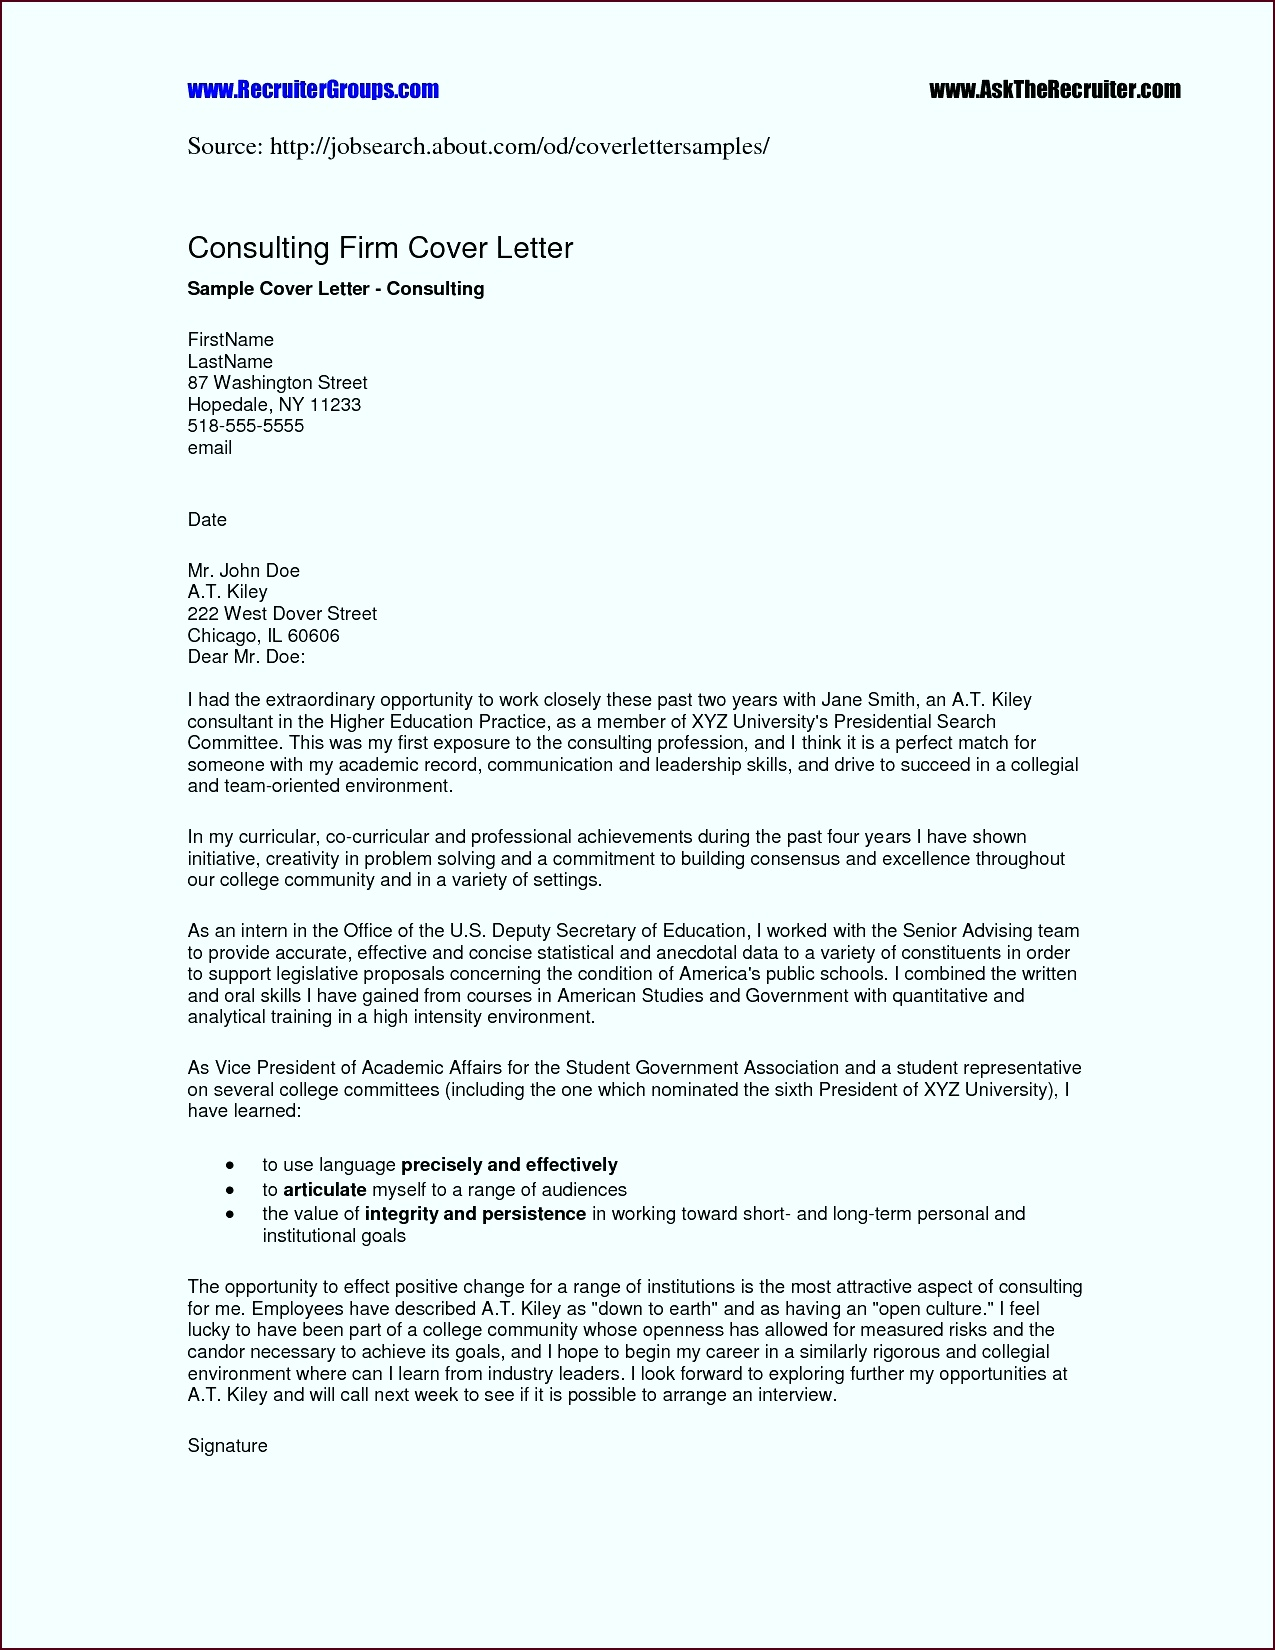 teacher cover letter template microsoft word new free job resume template cover letter template word 2014 fresh of teacher cover letter template microsoft word roeue